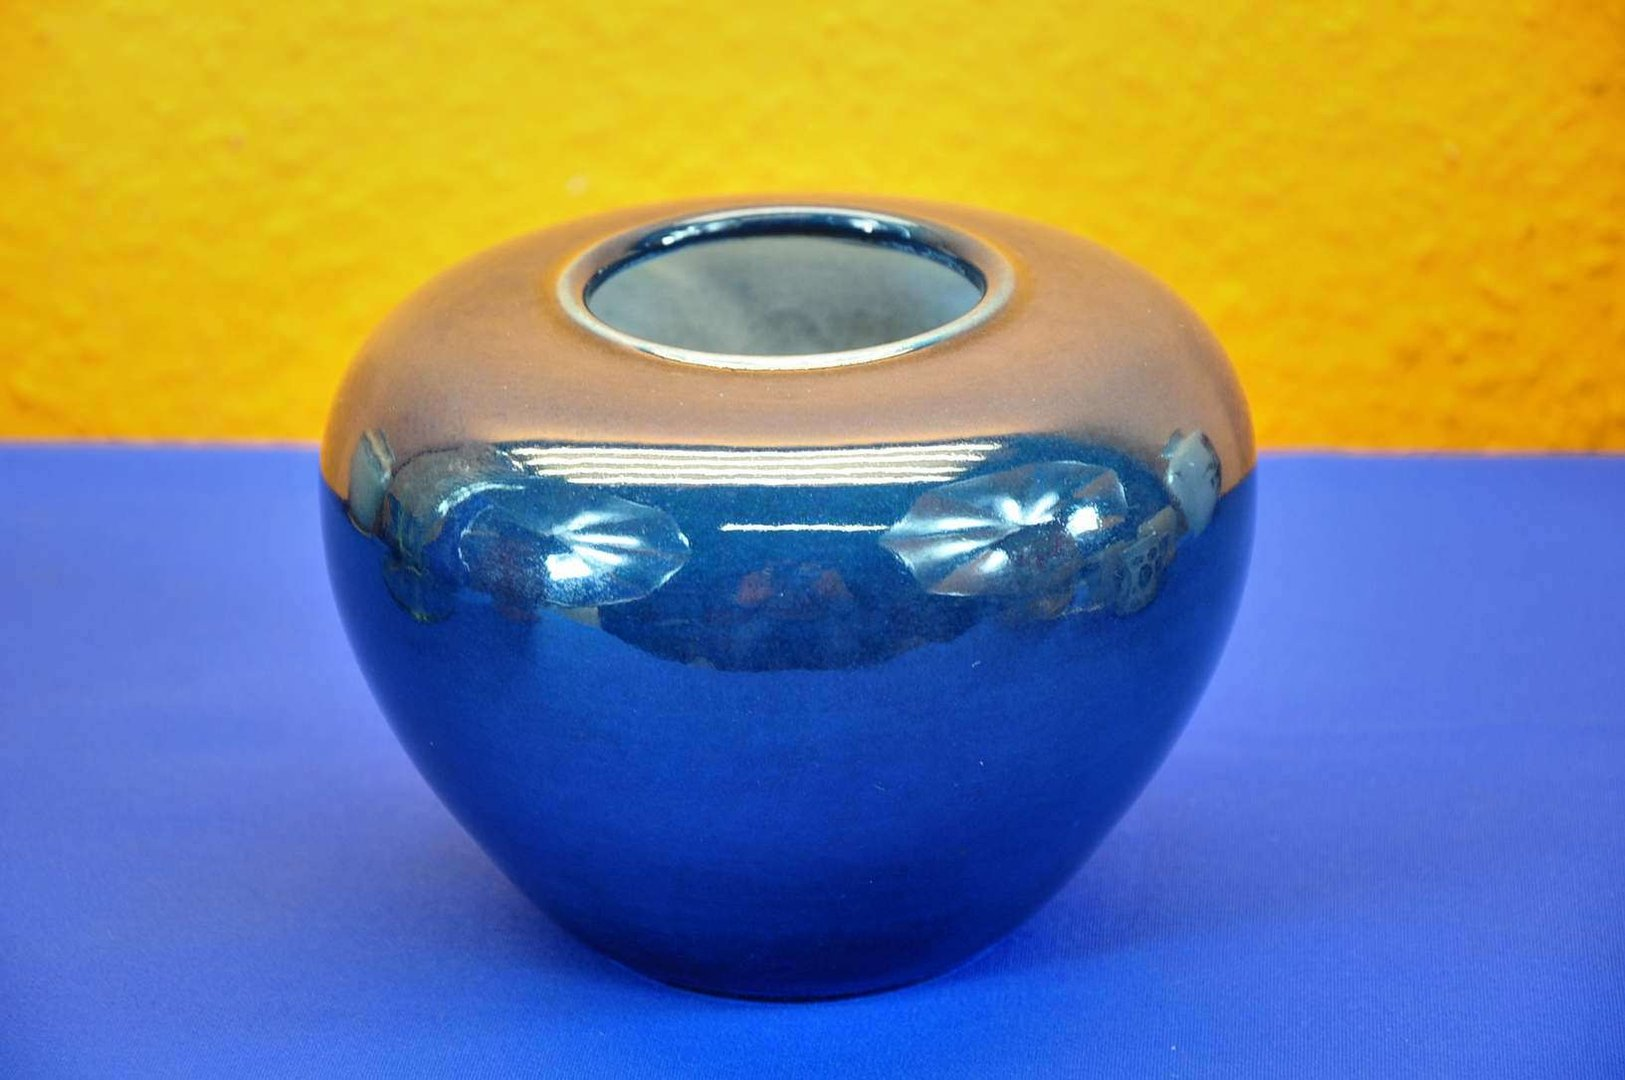 Formano Online Shop Ceramic Vase Formano J L K Ball Vase In Blue